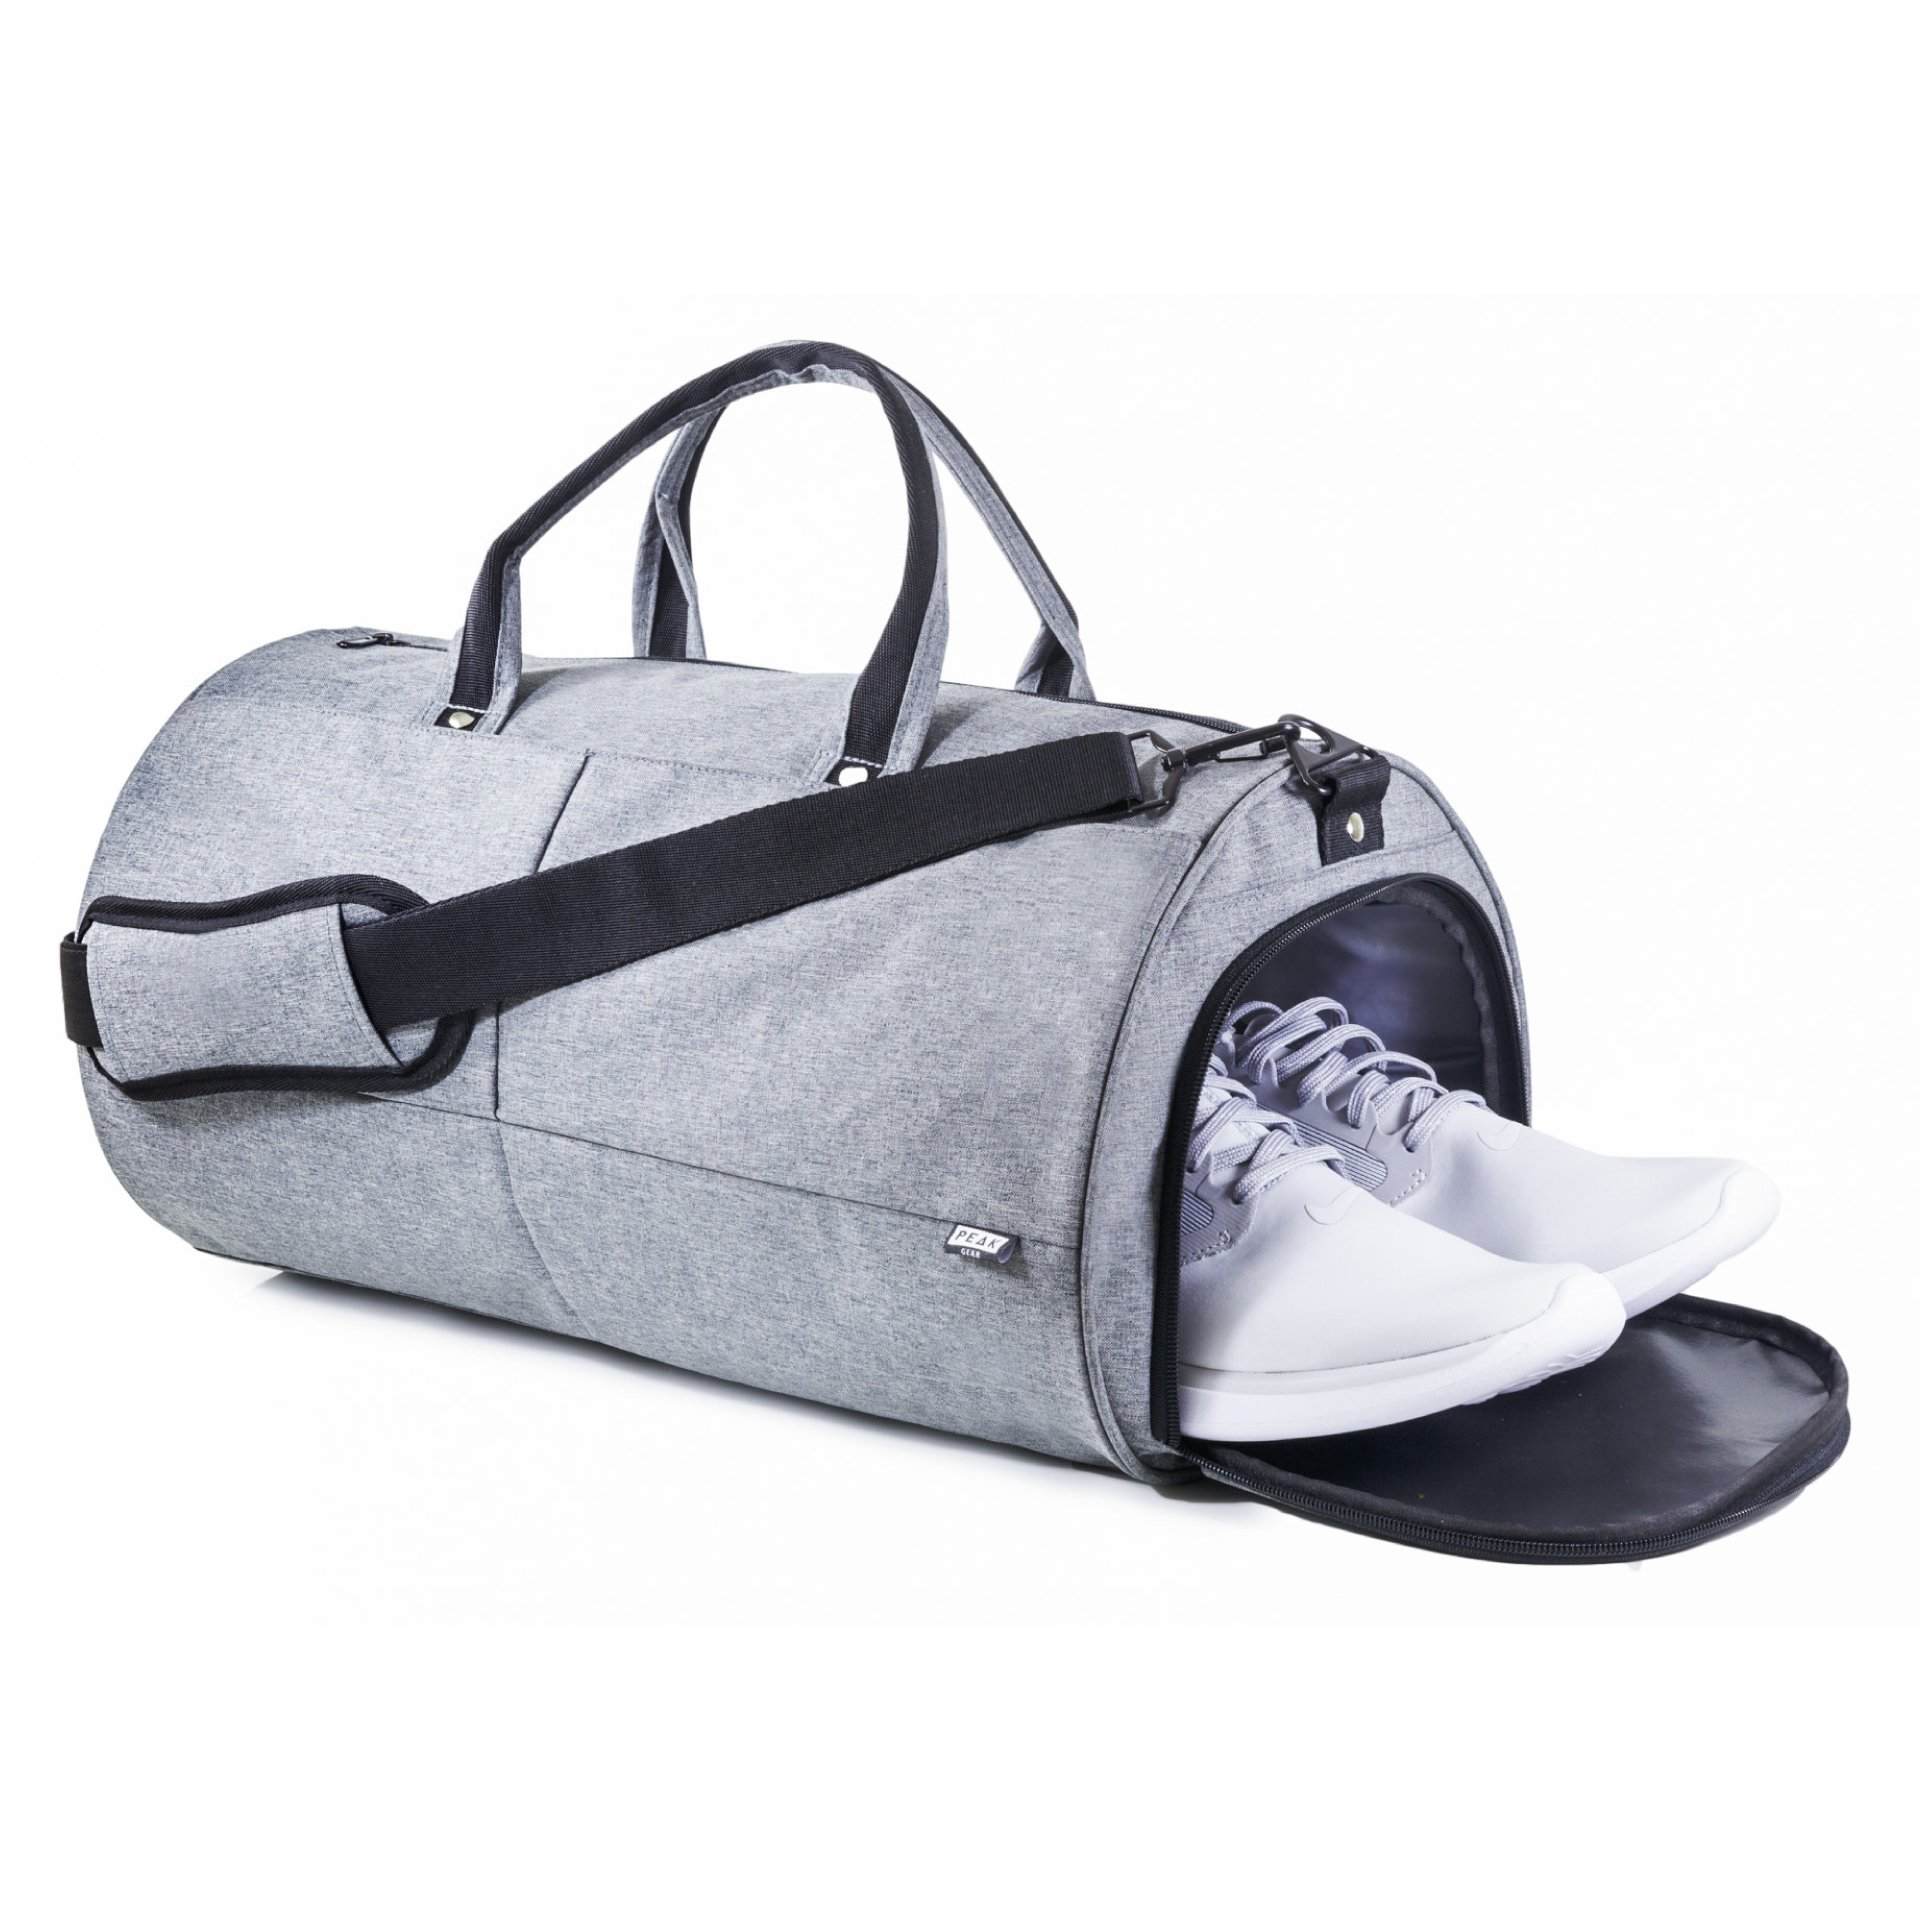 The Everyday Duffel Bag - Travel/Gym Duffle Tote - INCLUDES Lifetime Lost & Found Service [NEW]